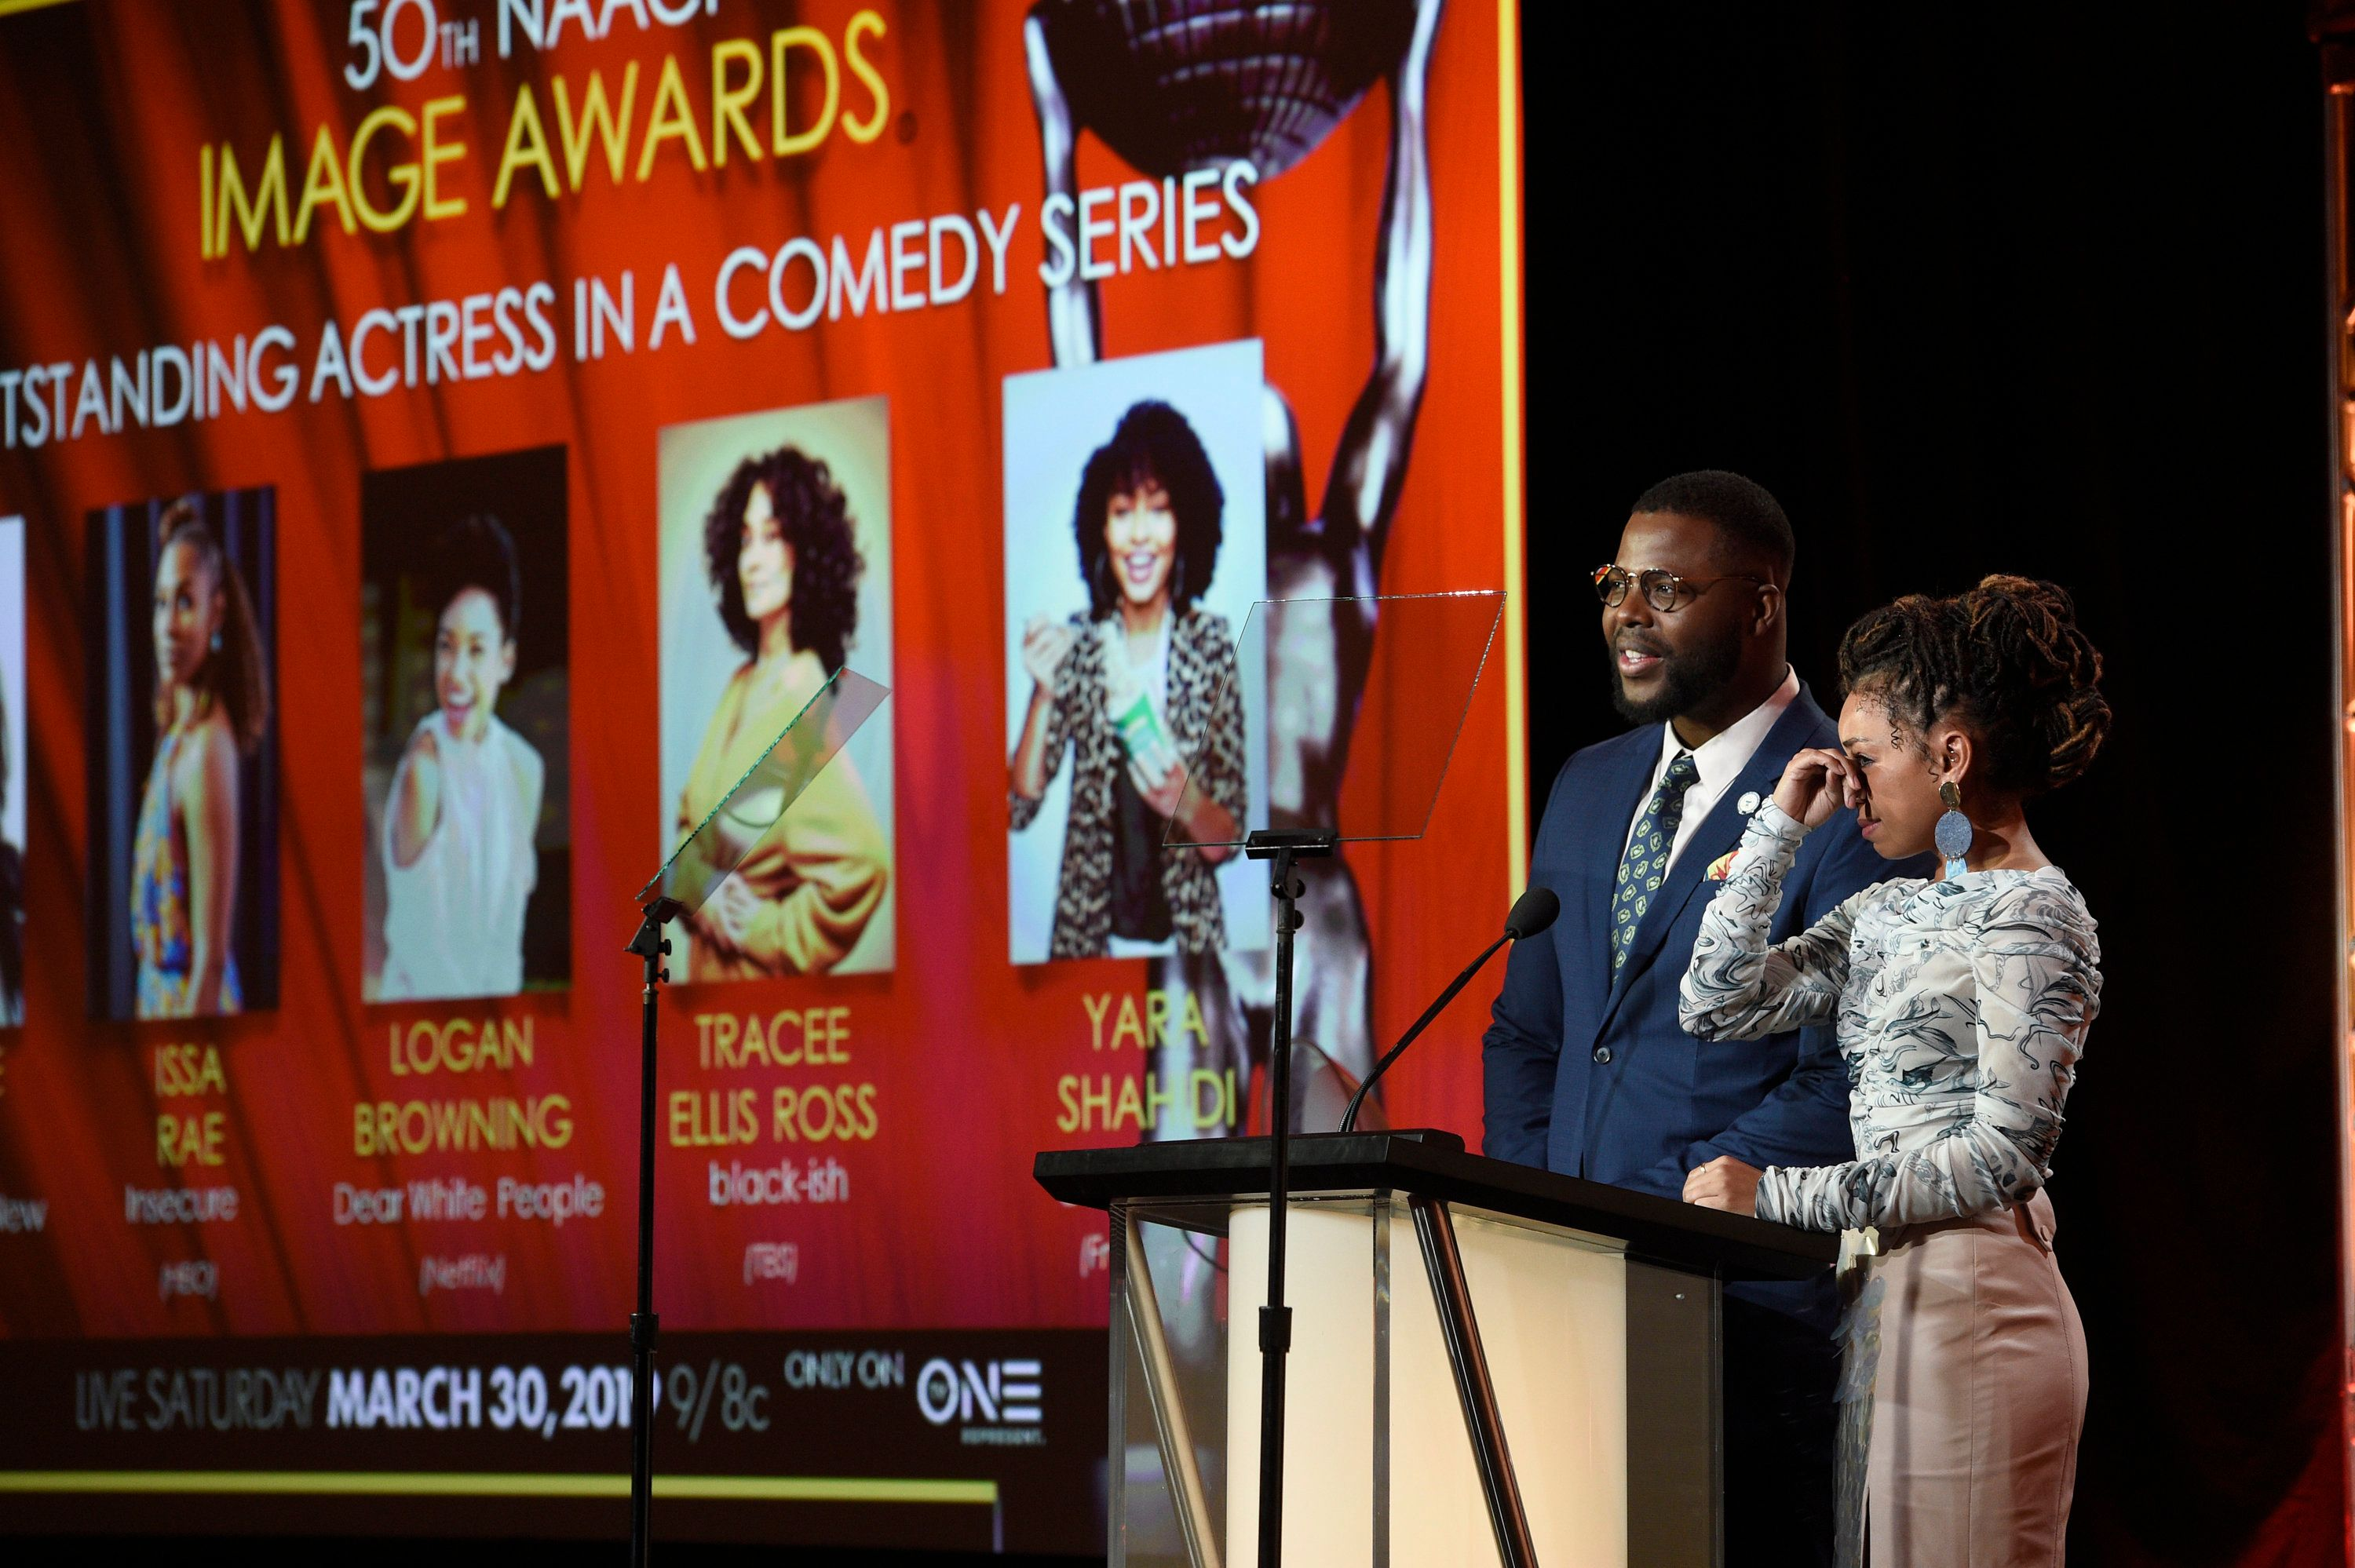 Logan Browning, right, reacts as Winston Duke announces her as a nominee for the 50th annual NAACP Image Awards during TV One's Winter Television Critics Association Press Tour on Wednesday, Feb. 13, 2019, in Pasadena, Calif. (Photo by Chris Pizzello/Invision/AP)